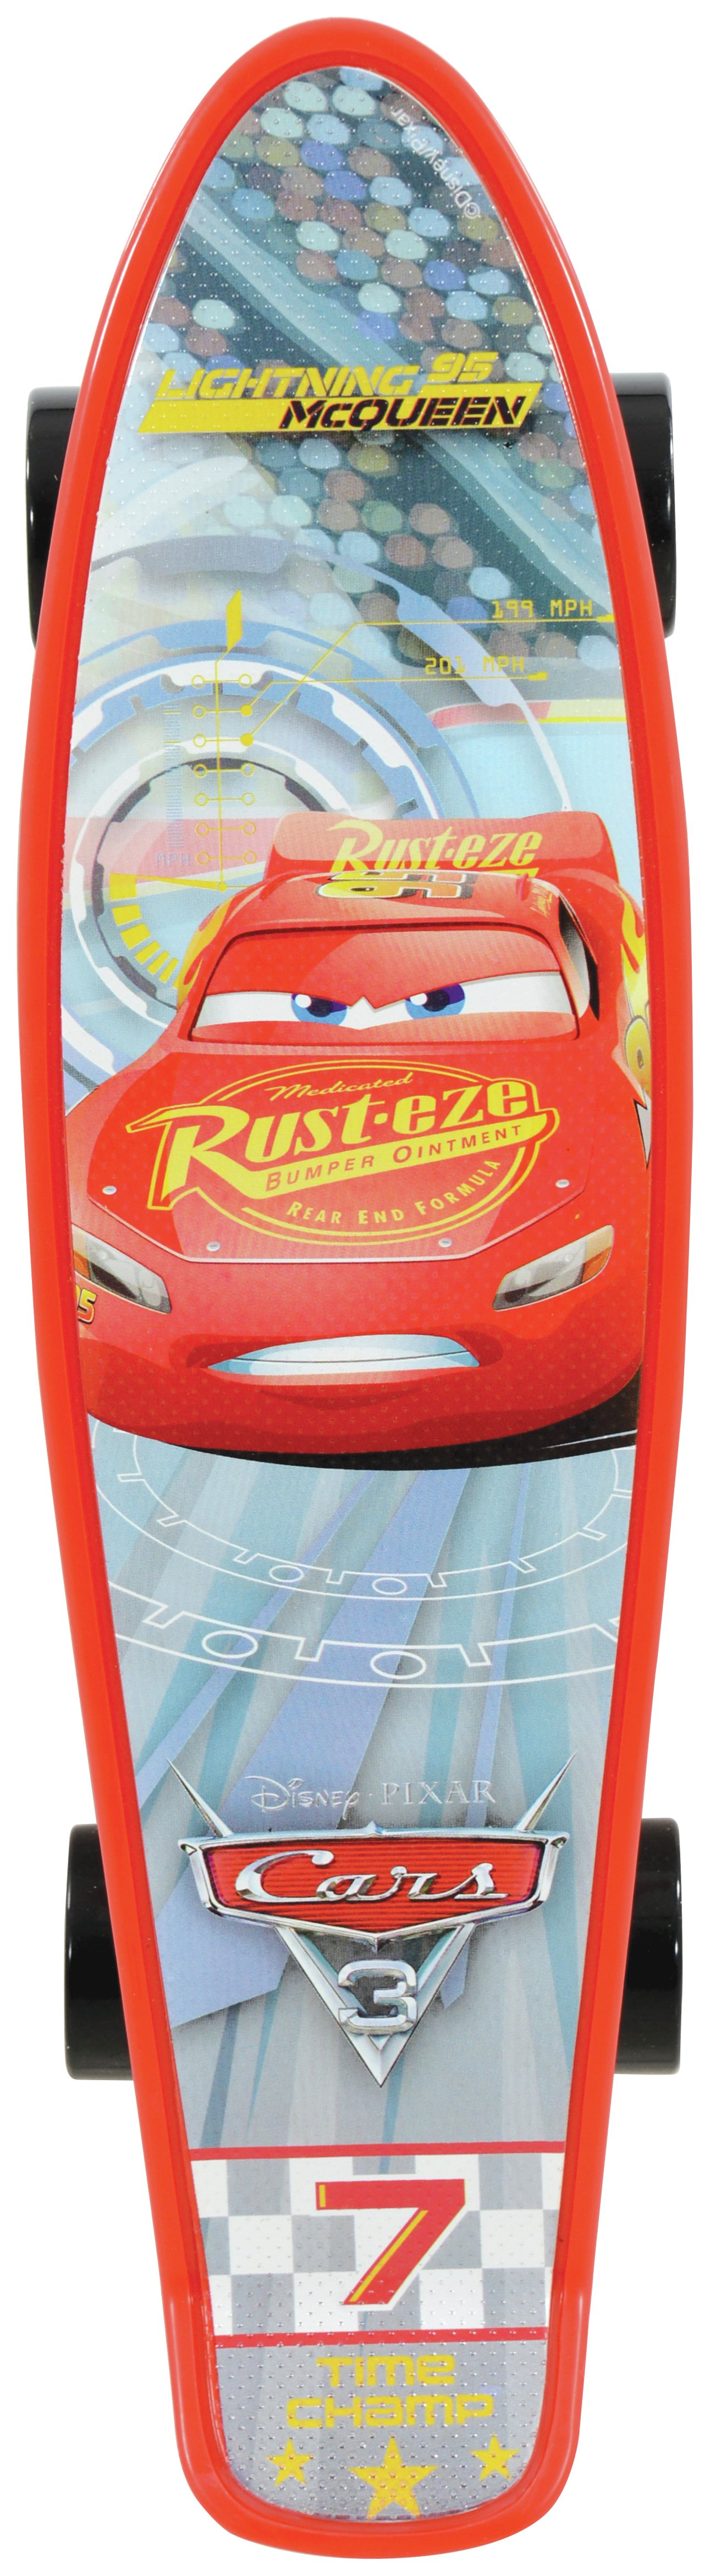 Image of Disney Cars 3 Cruiser Skateboard.